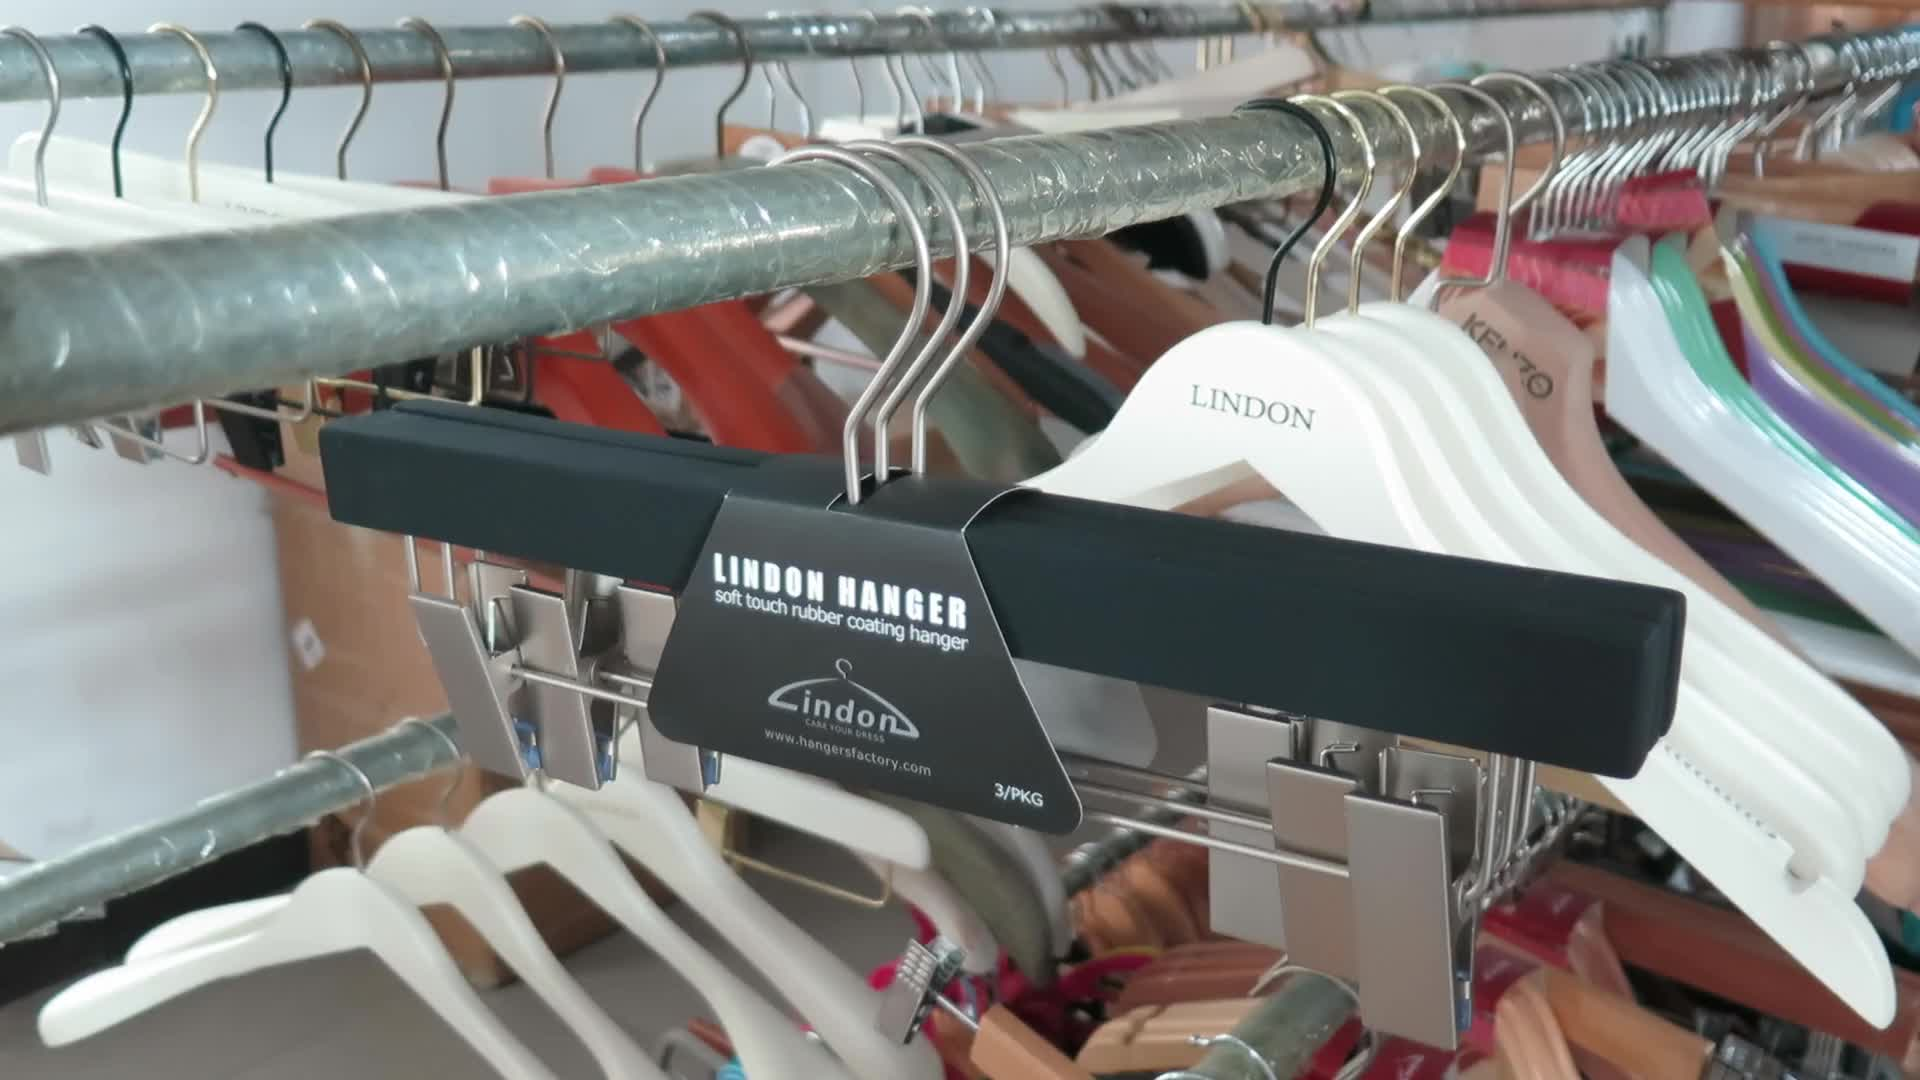 Assessed Supplier LINDON Manufacturer Luxury Grey Rubber Coated Wooden Trouser Hangers